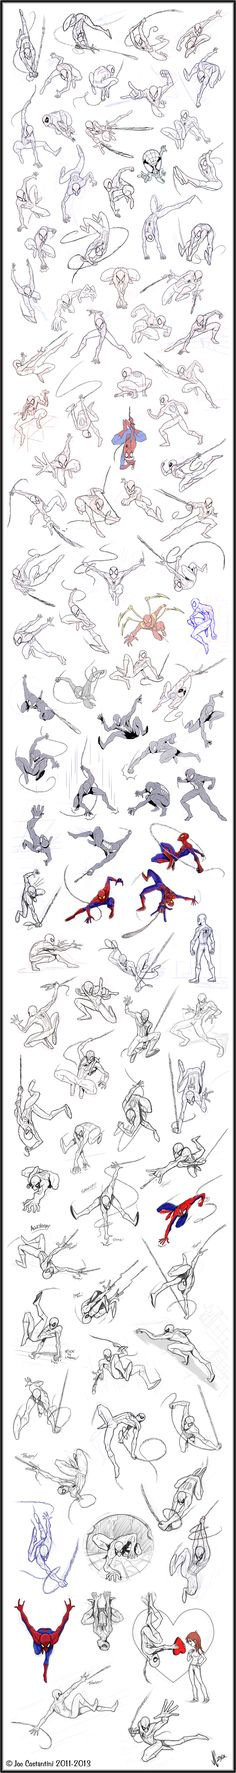 100 Spidey Poses by *2Ajoe on deviantART